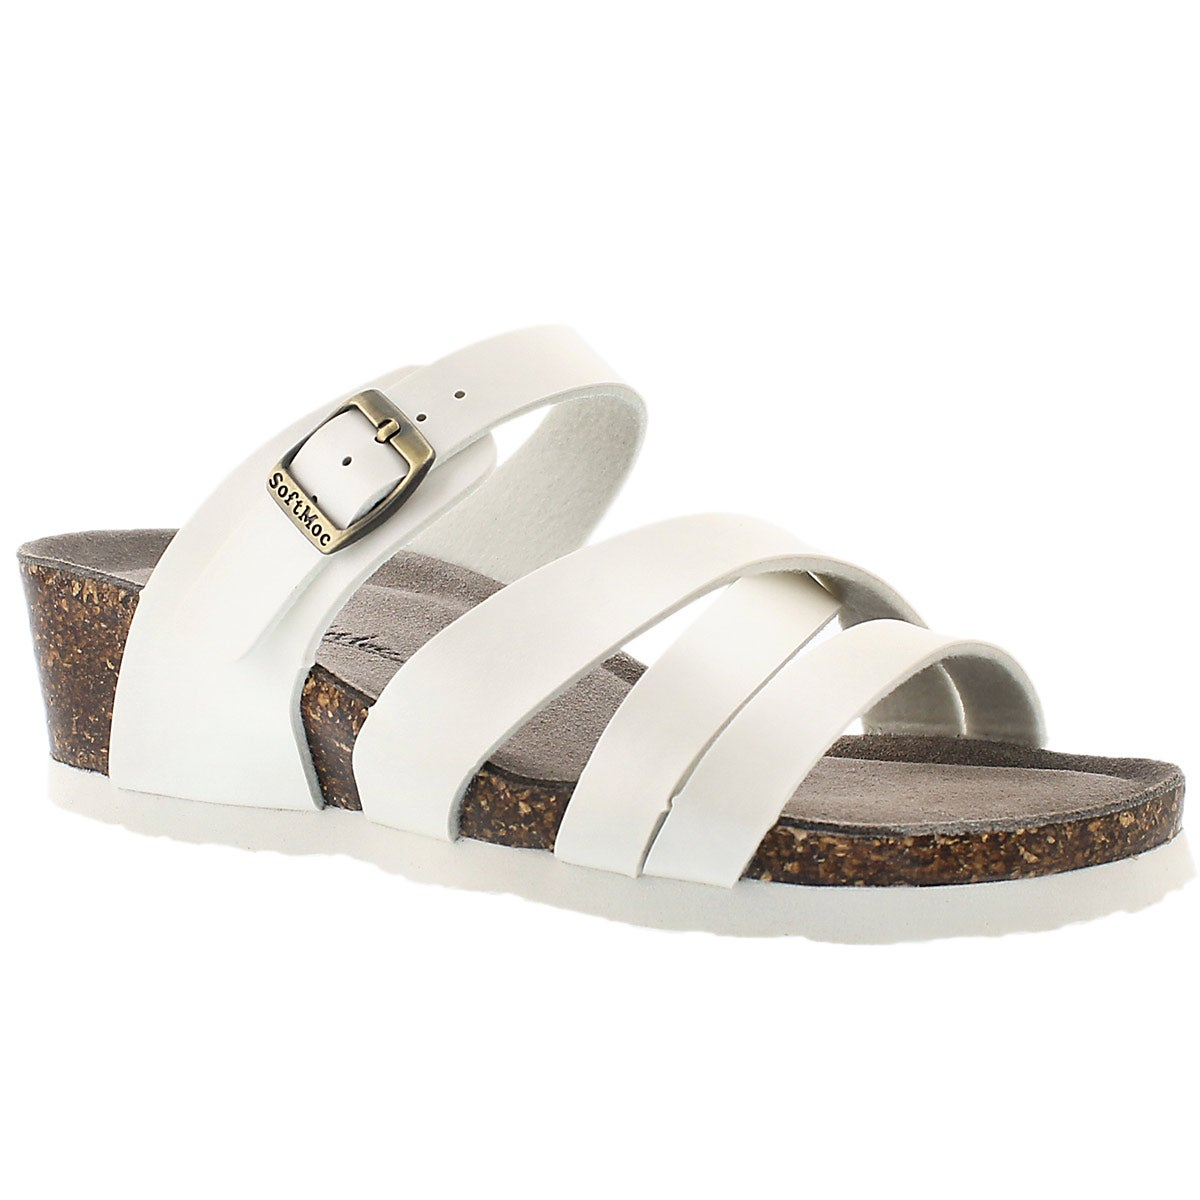 Women's GINNIE white memory foam wedge sandals